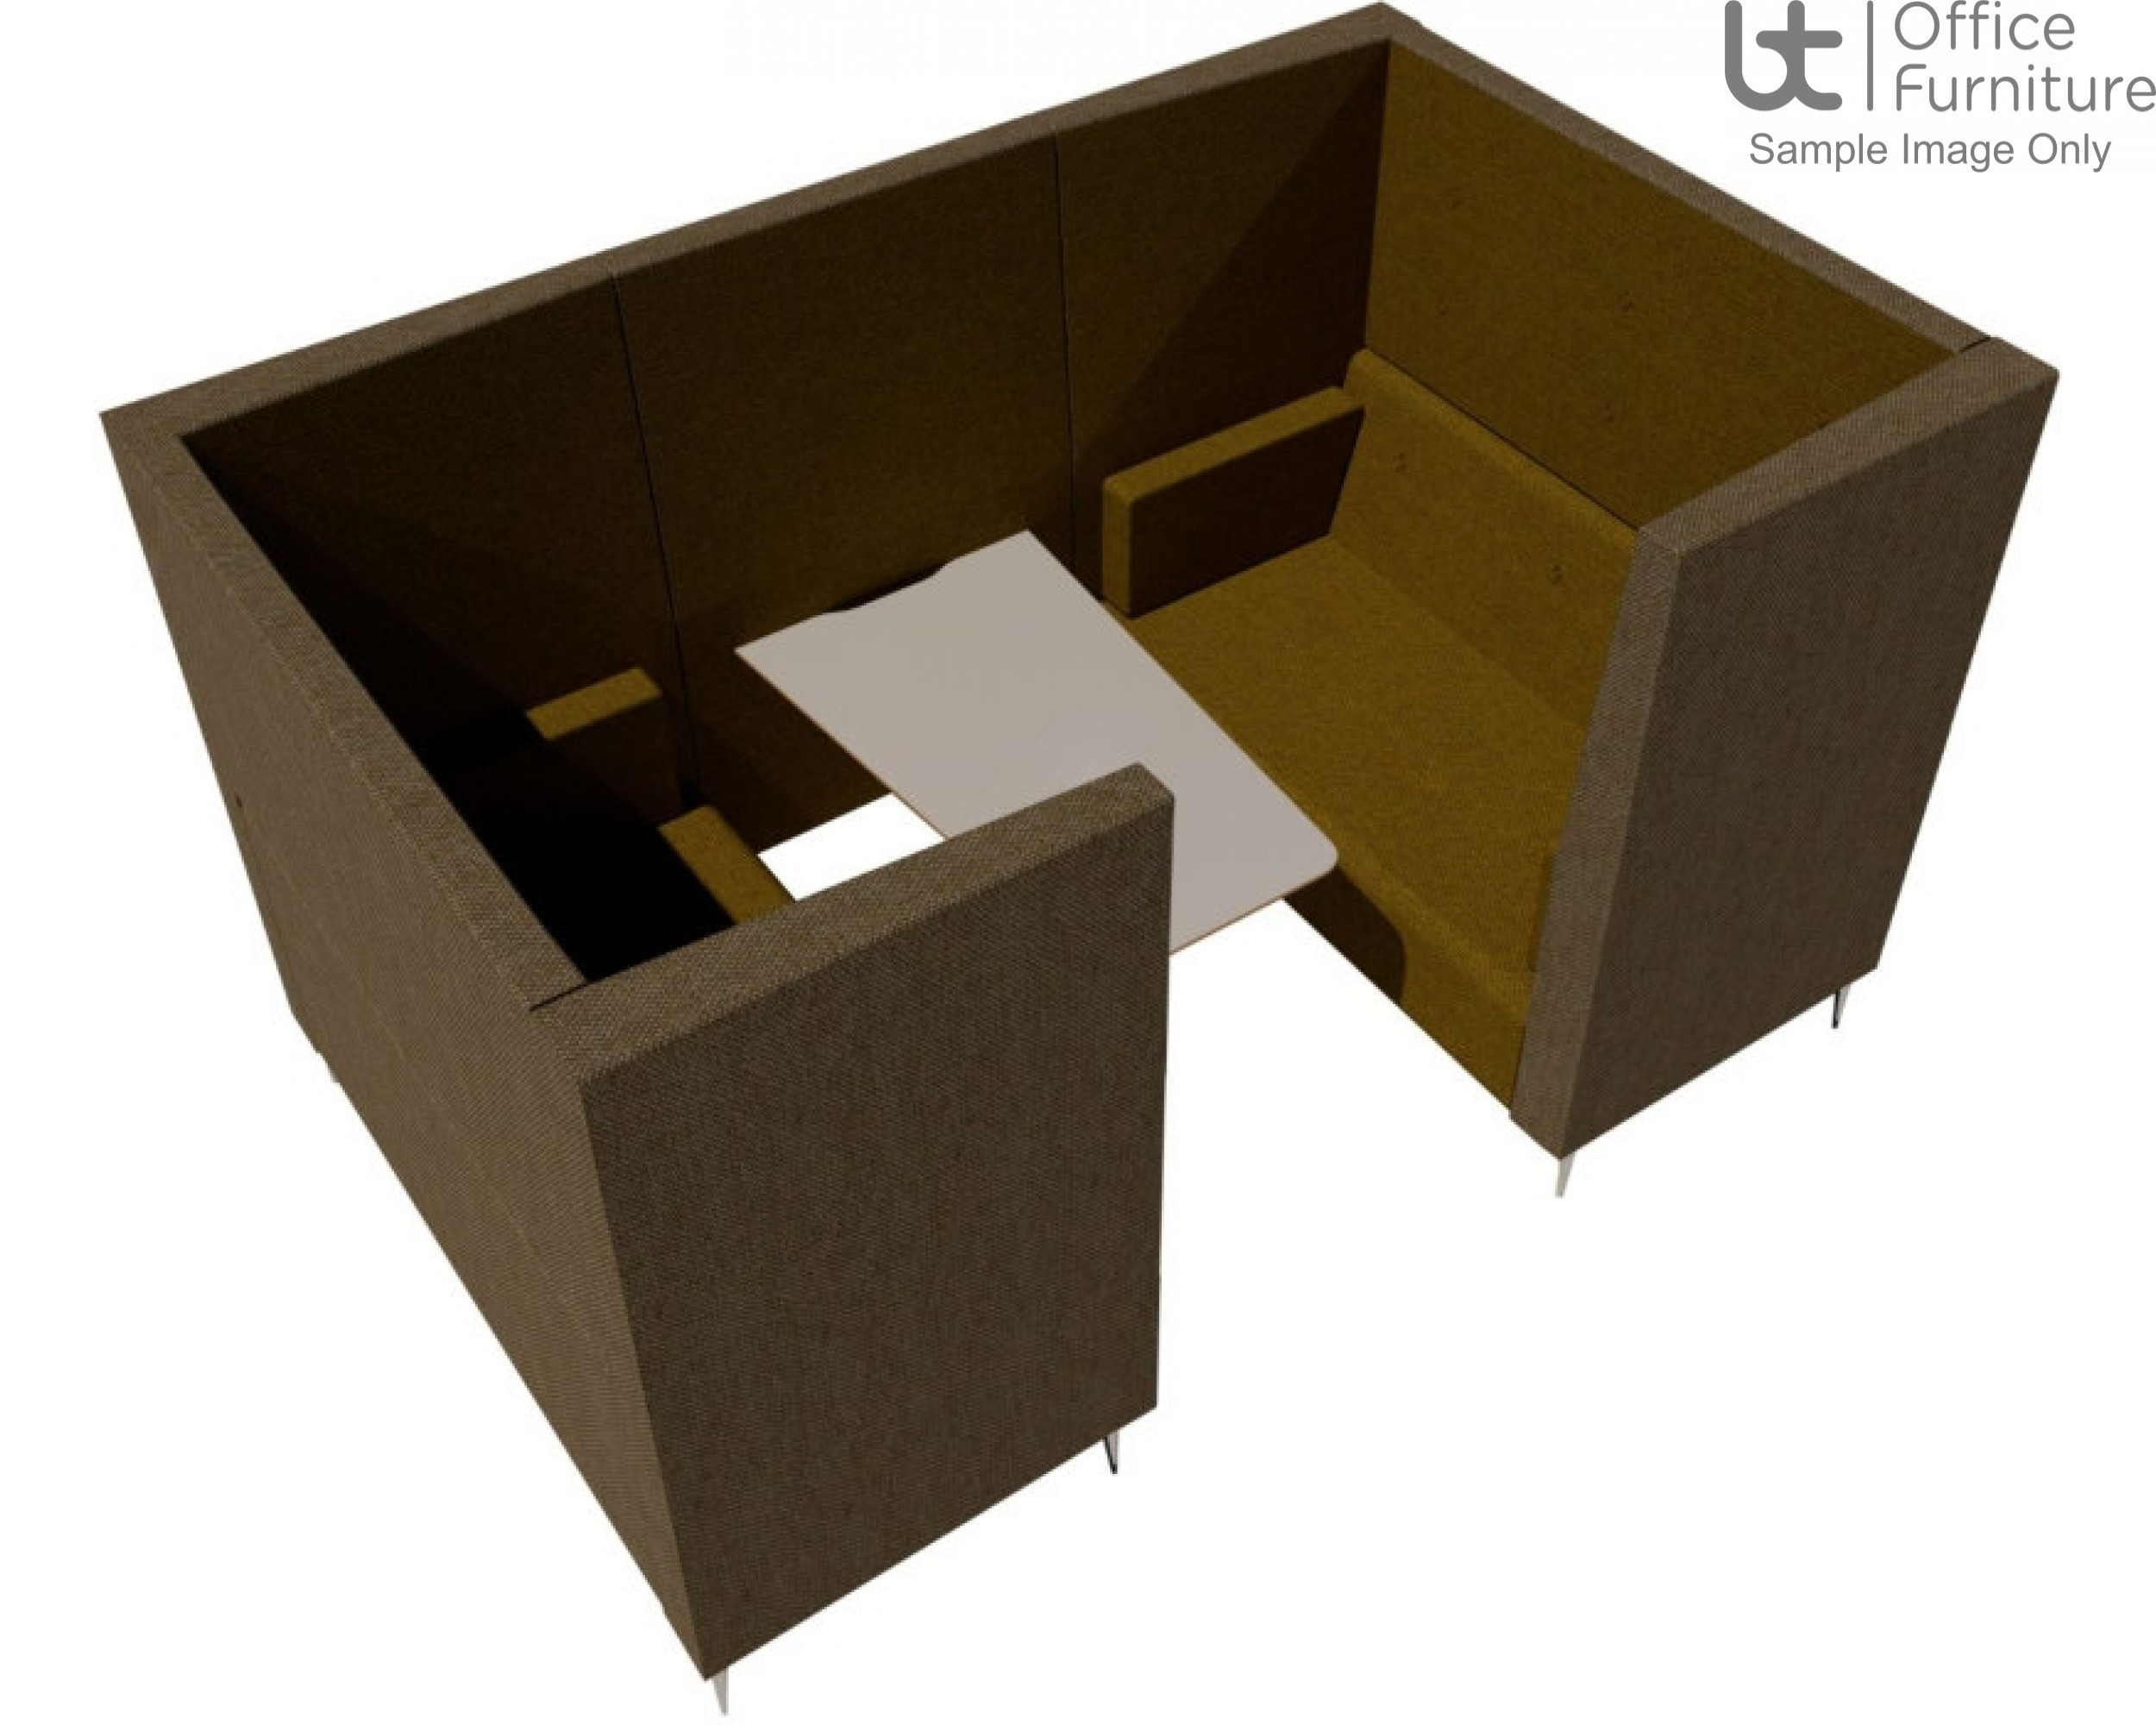 Verco Pod/Booth - Jensen-Up four person booth inc integral high acoustic surround, 800mm wide + 600mm deep MFC Table